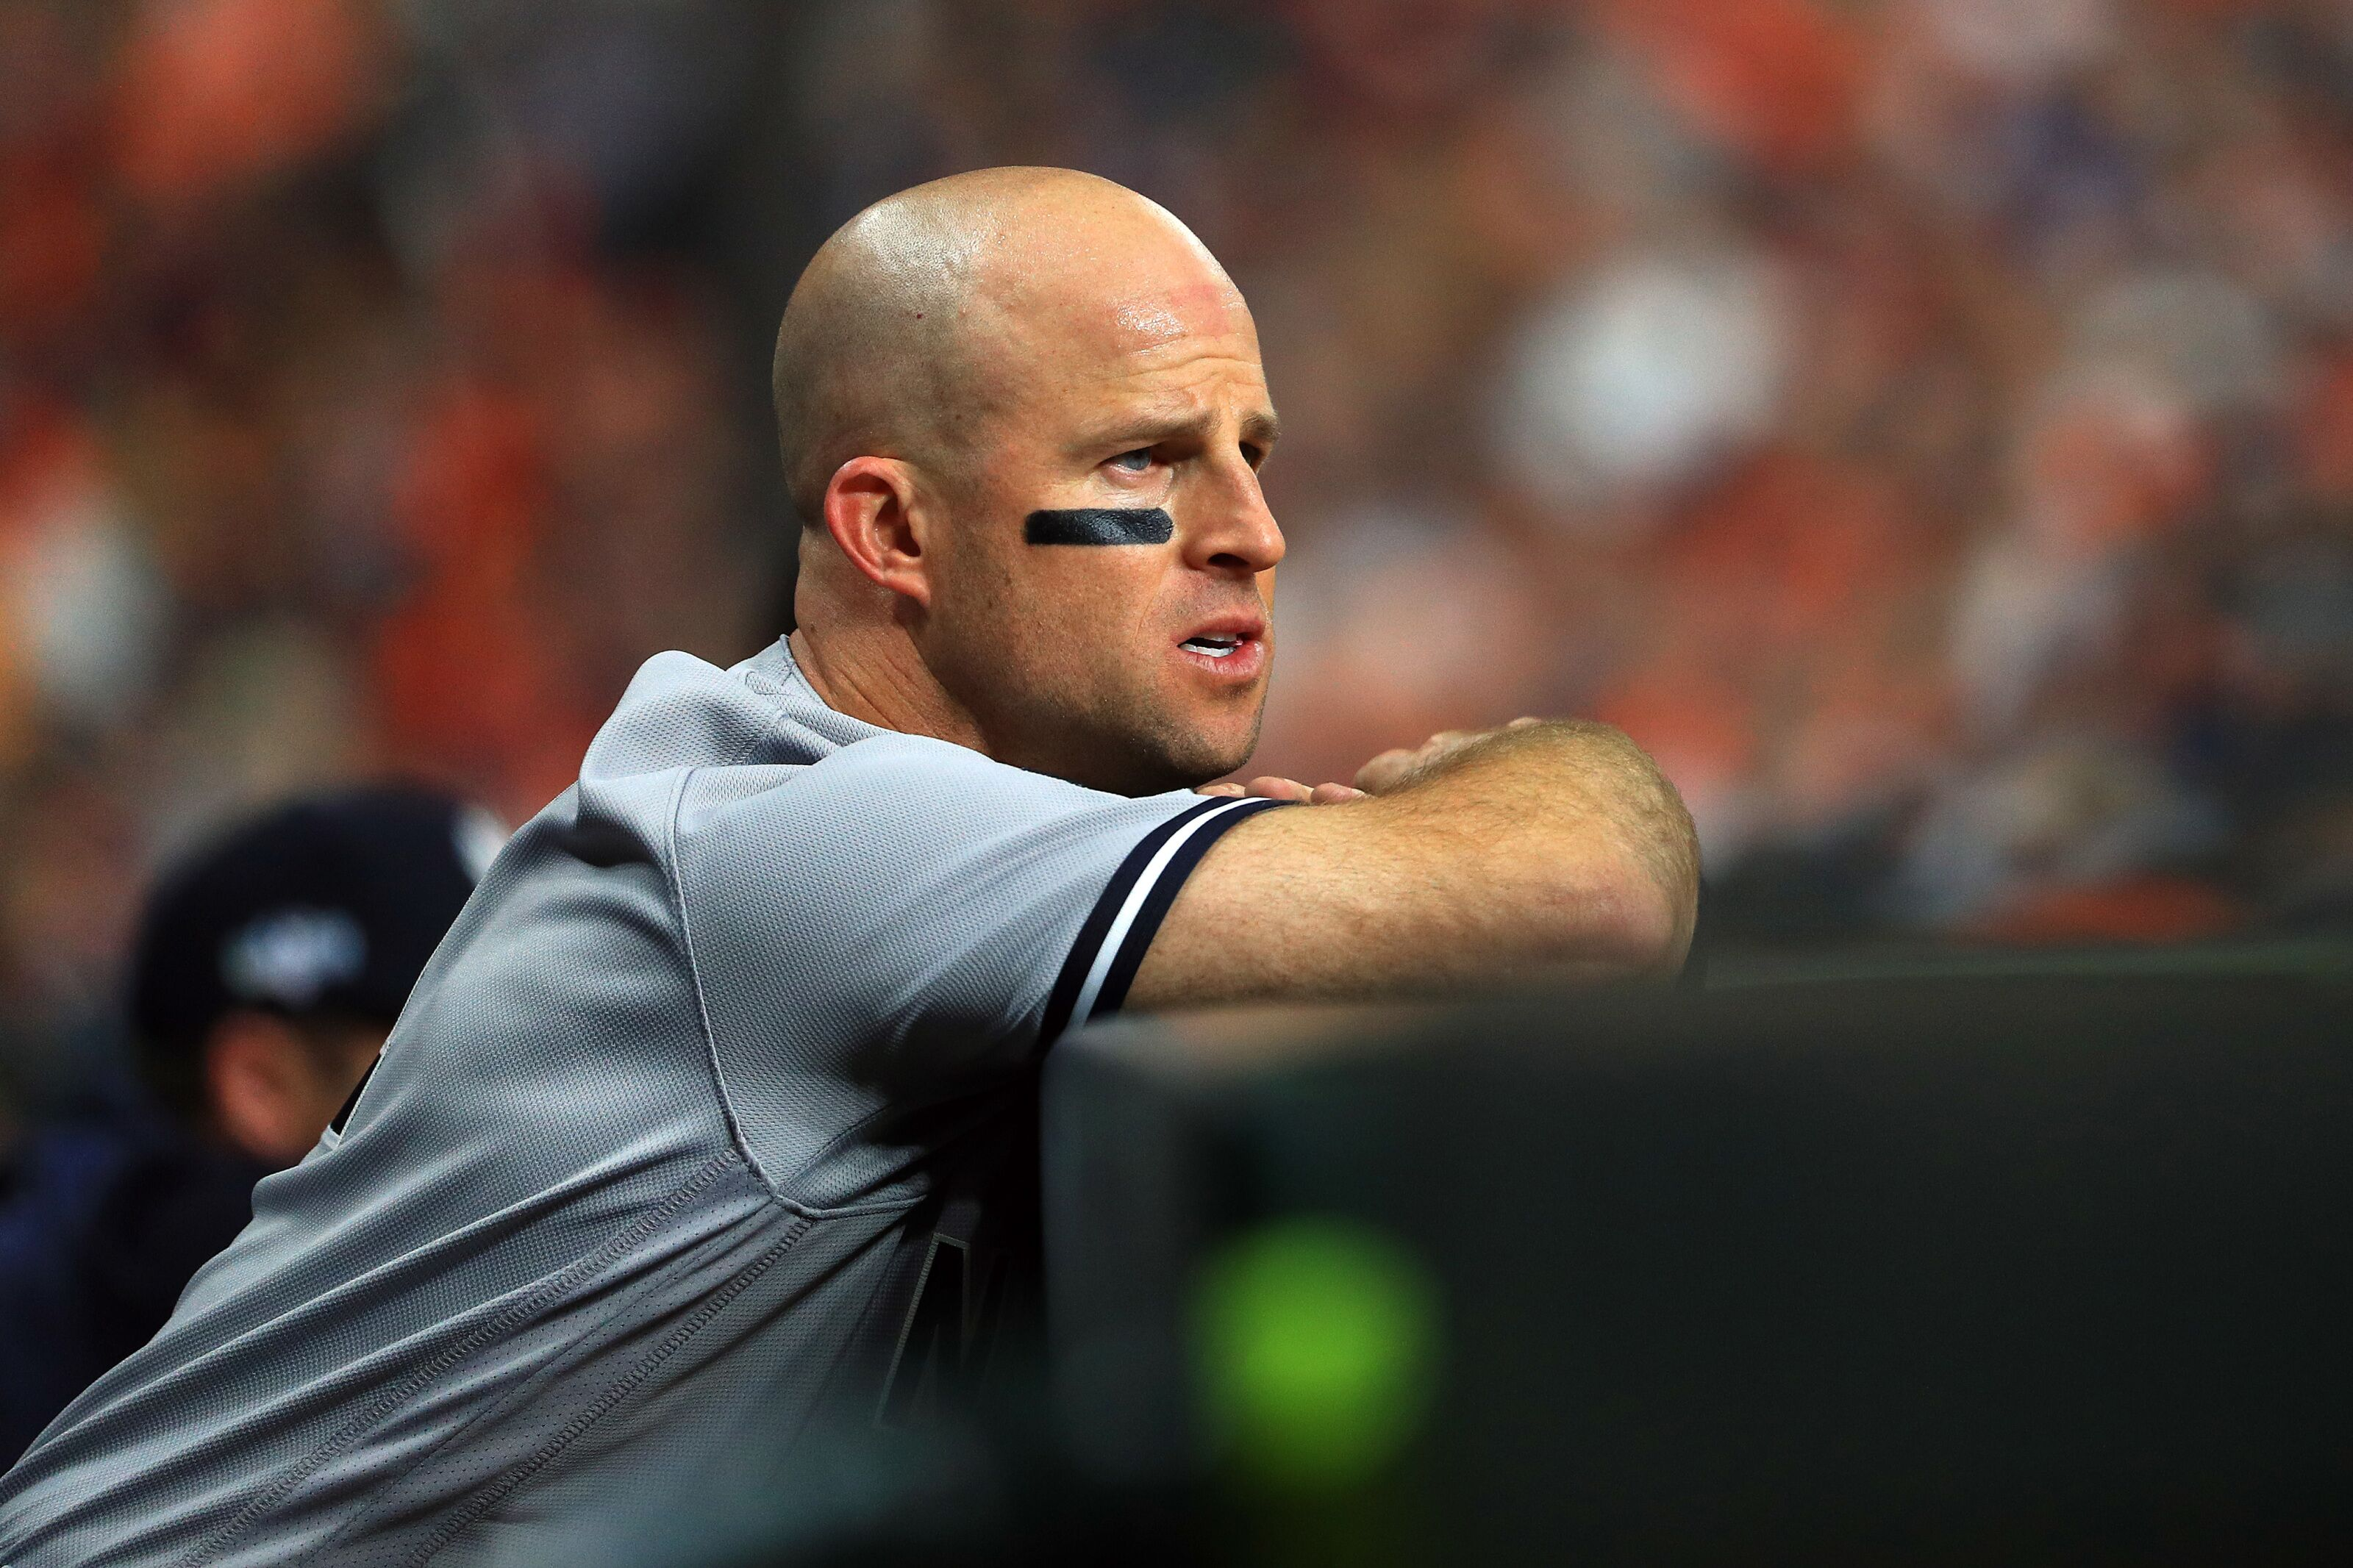 Yankees: When will the resigning of Brett Gardner become official?